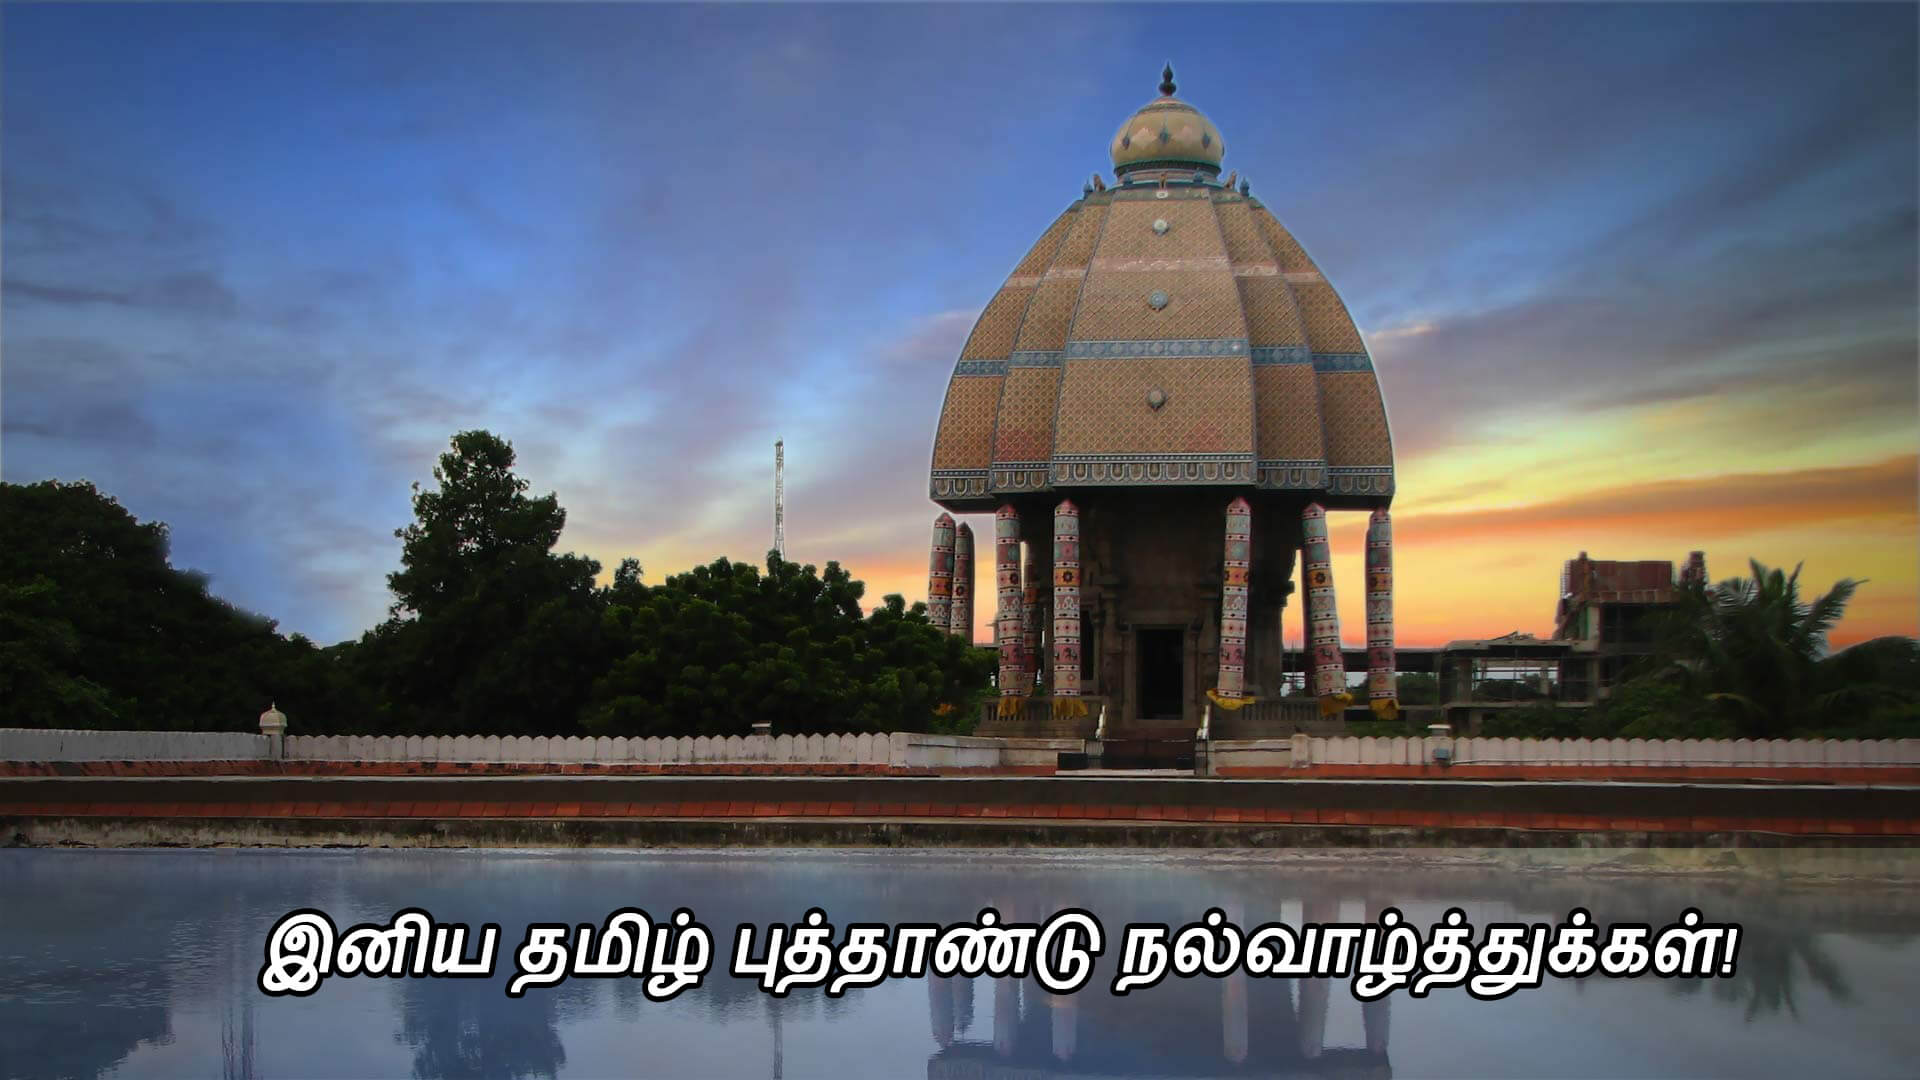 happy tamil new year wishes greetings valluvar kottam wallpaper